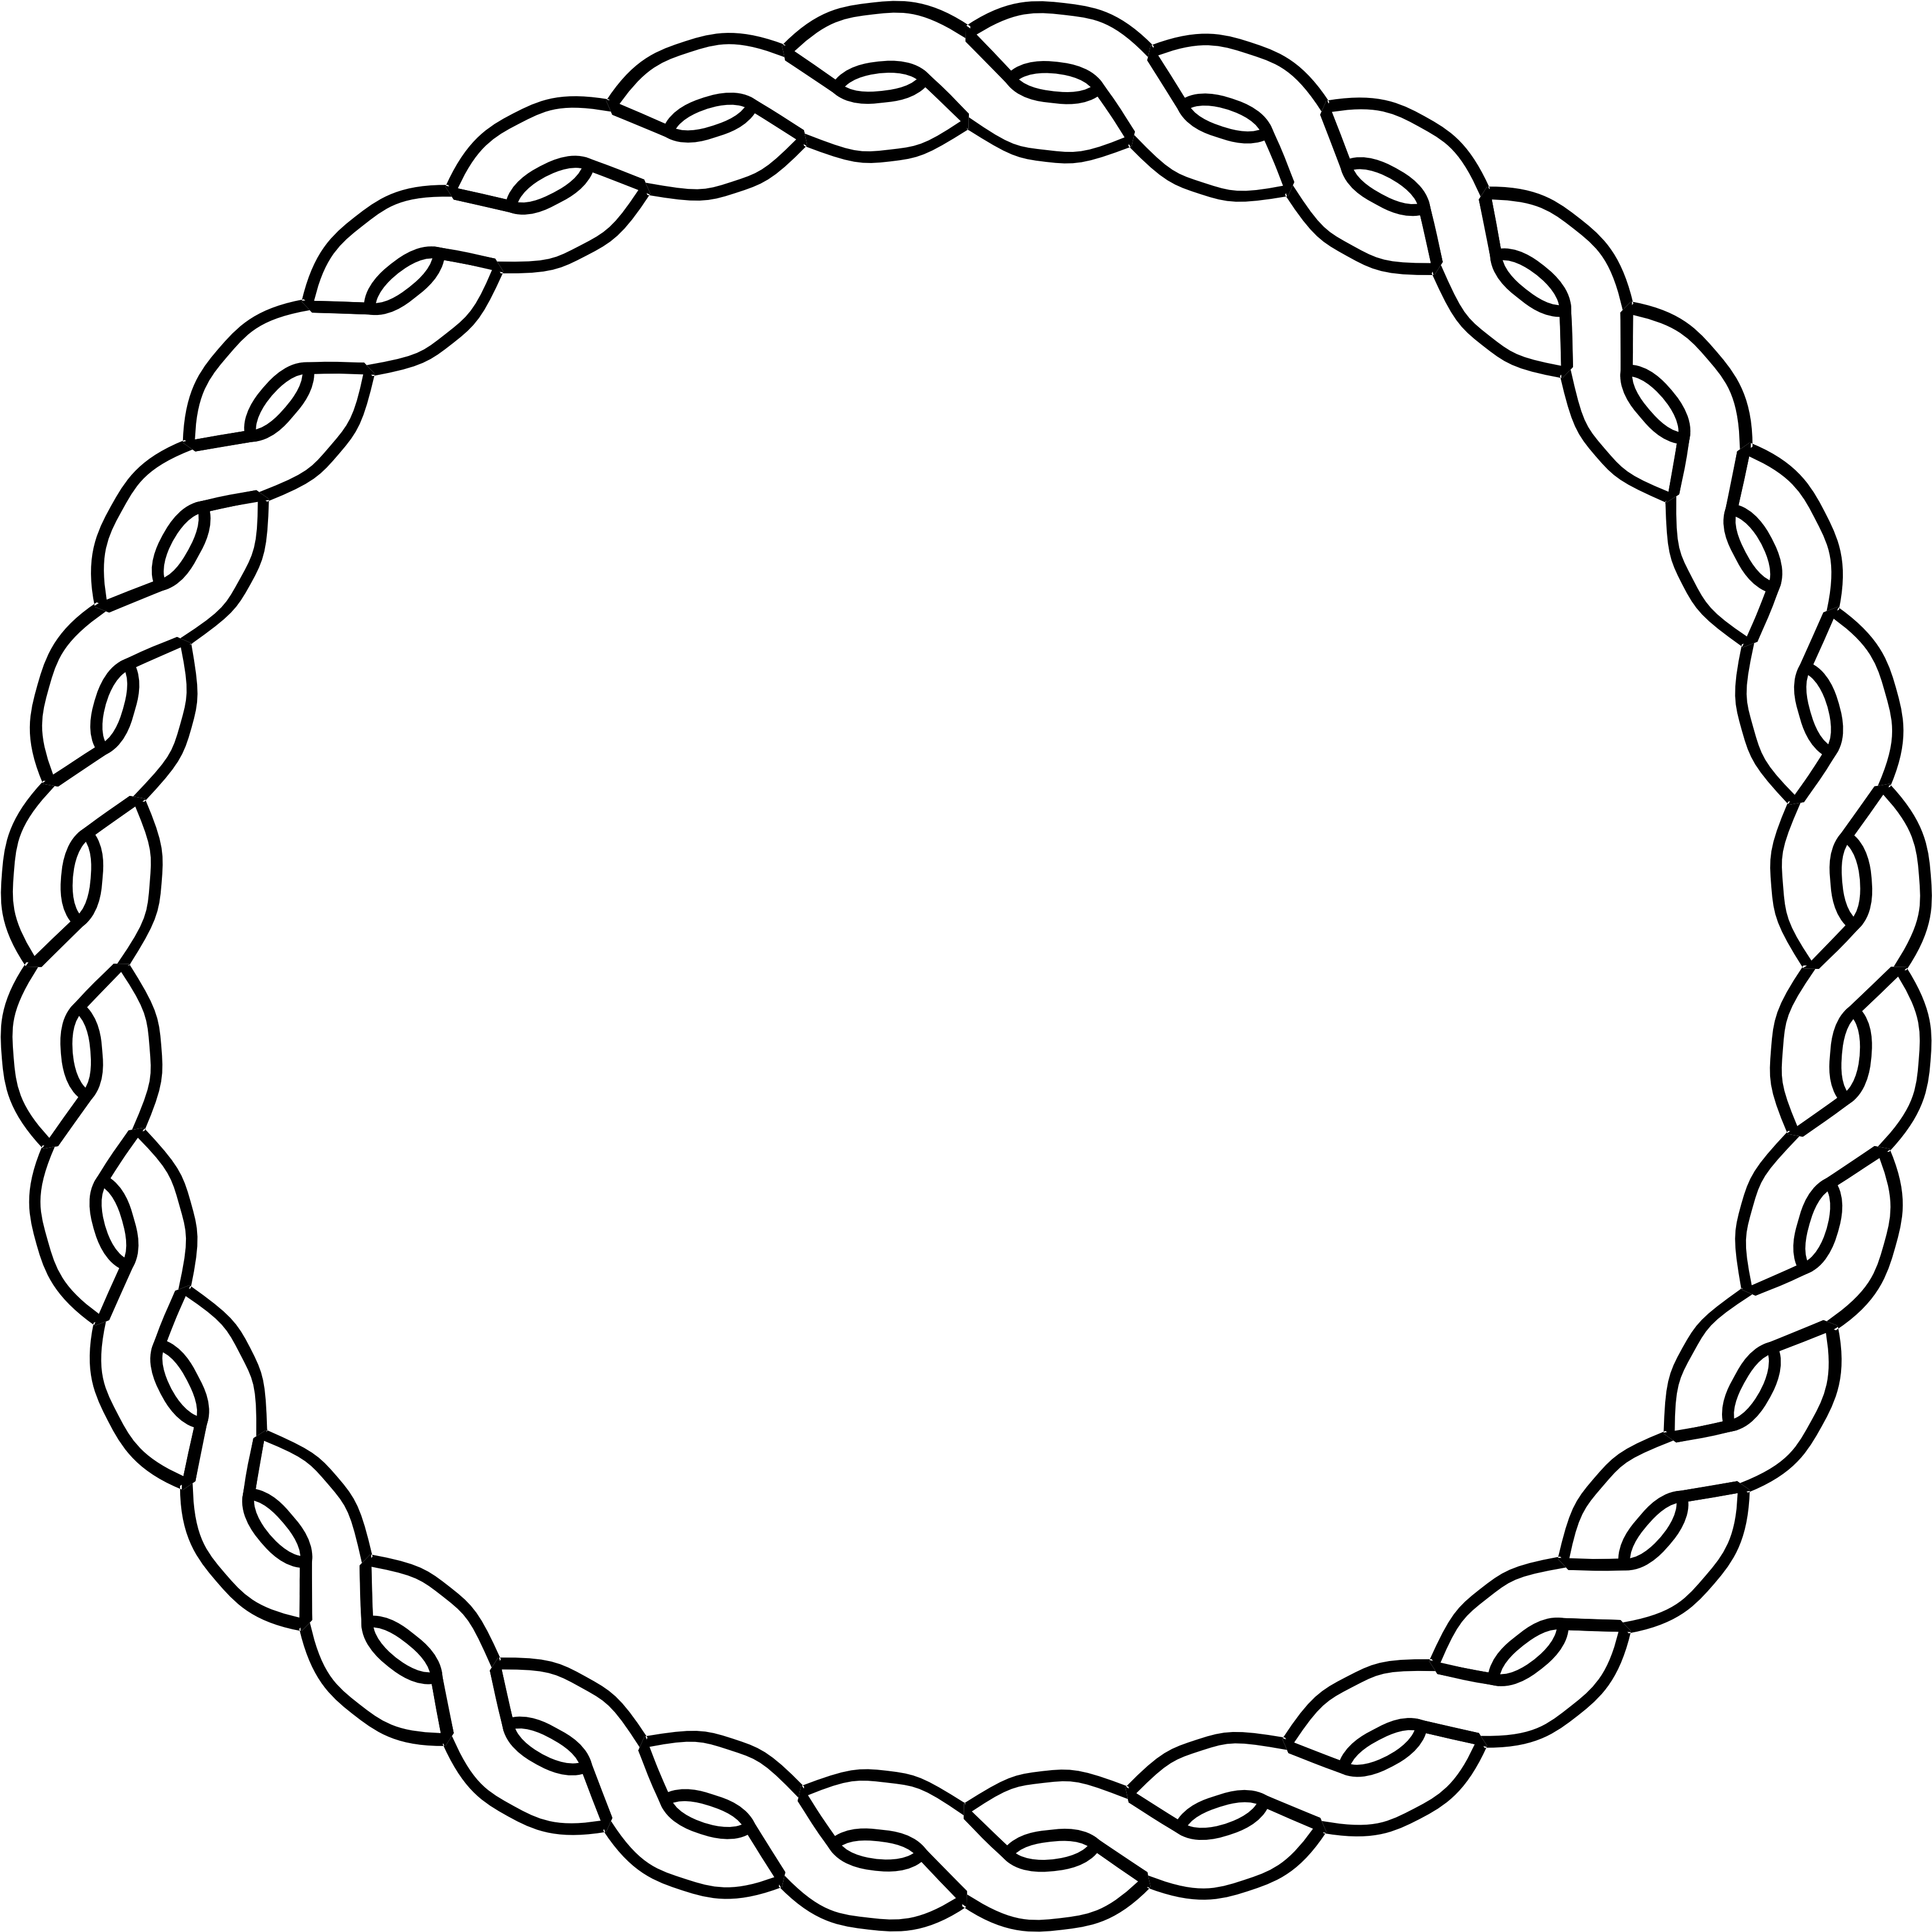 Circle of rope clipart black and white png freeuse library Download Clipart Rope Circle Black White Line Art Coloring - Circle ... png freeuse library